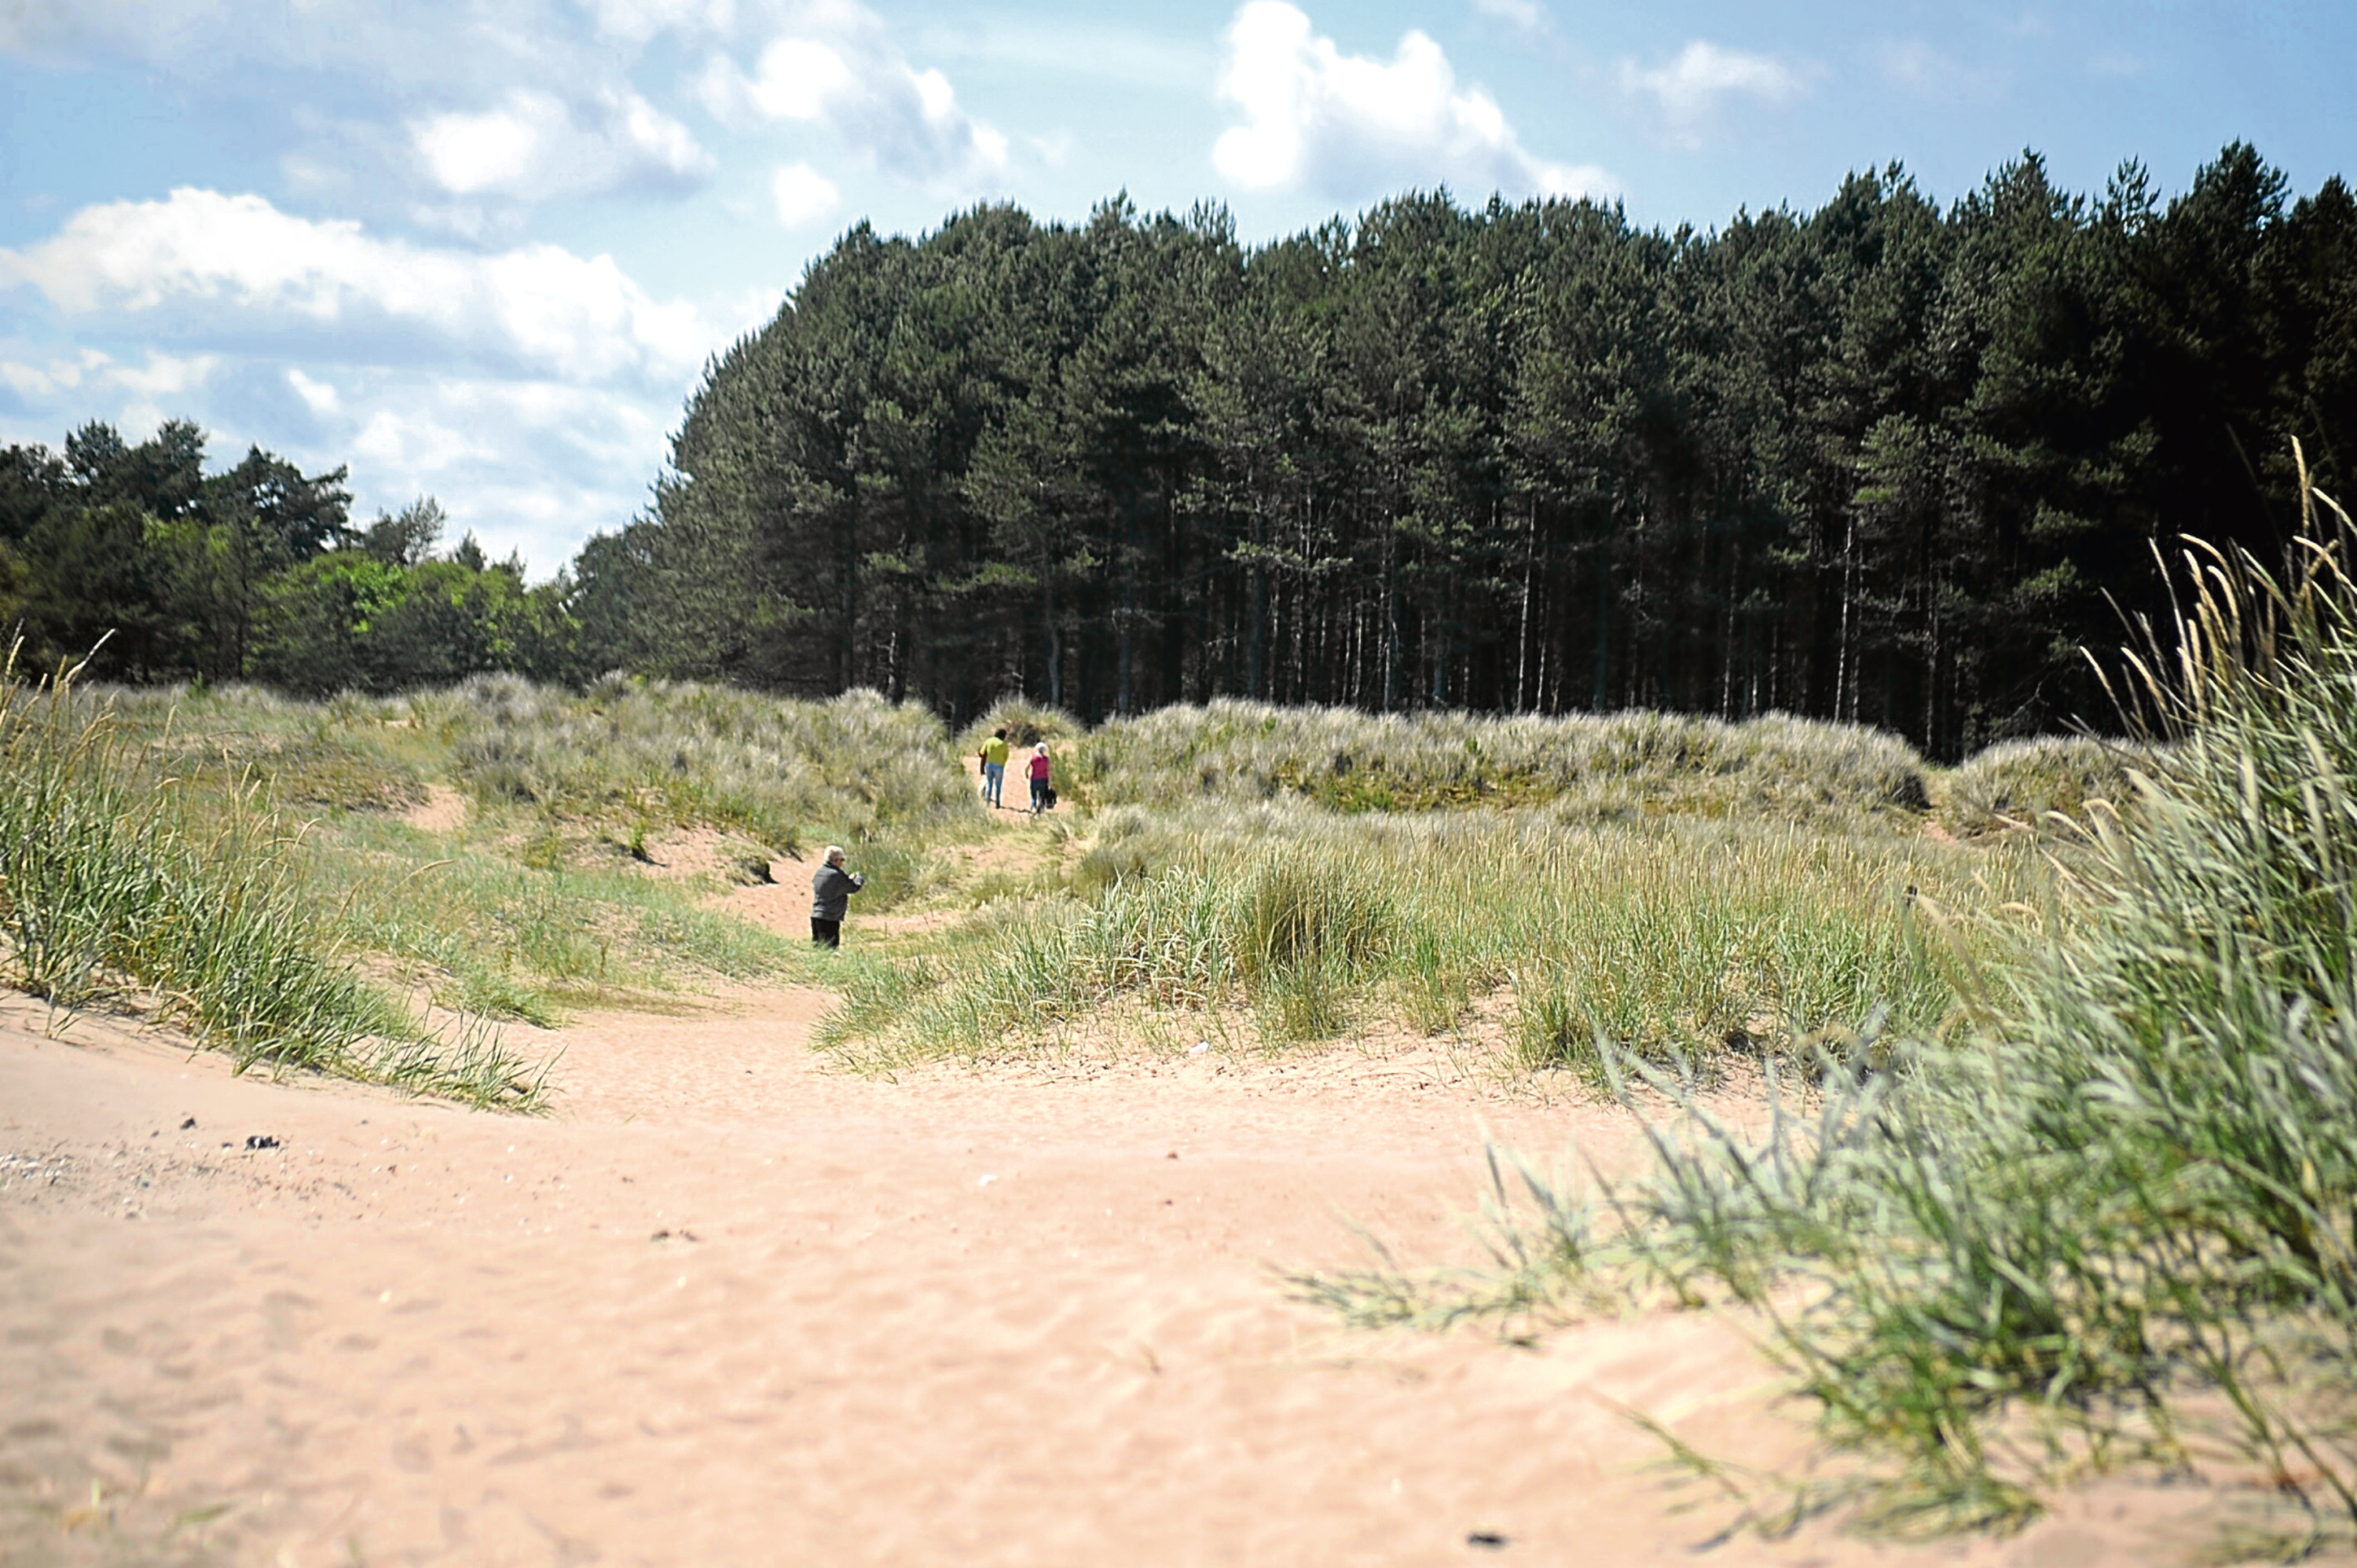 The beach at Tentsmuir (stock image)